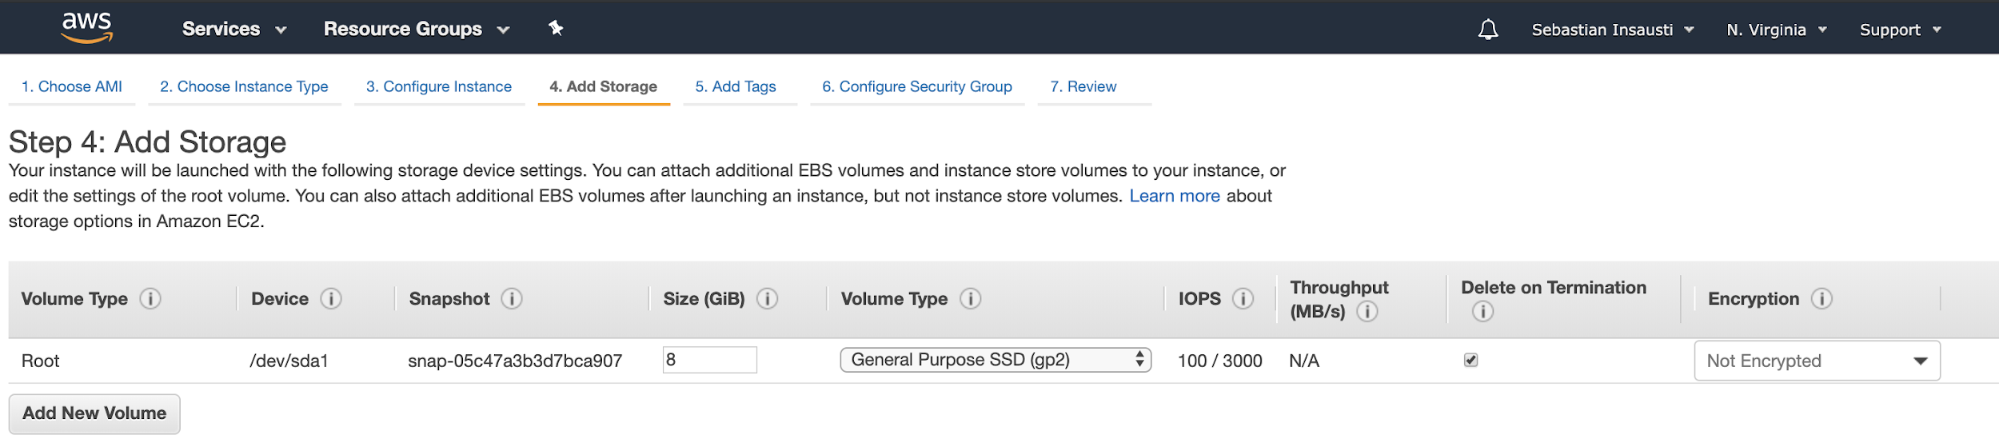 Amazon EC2 Add Storage